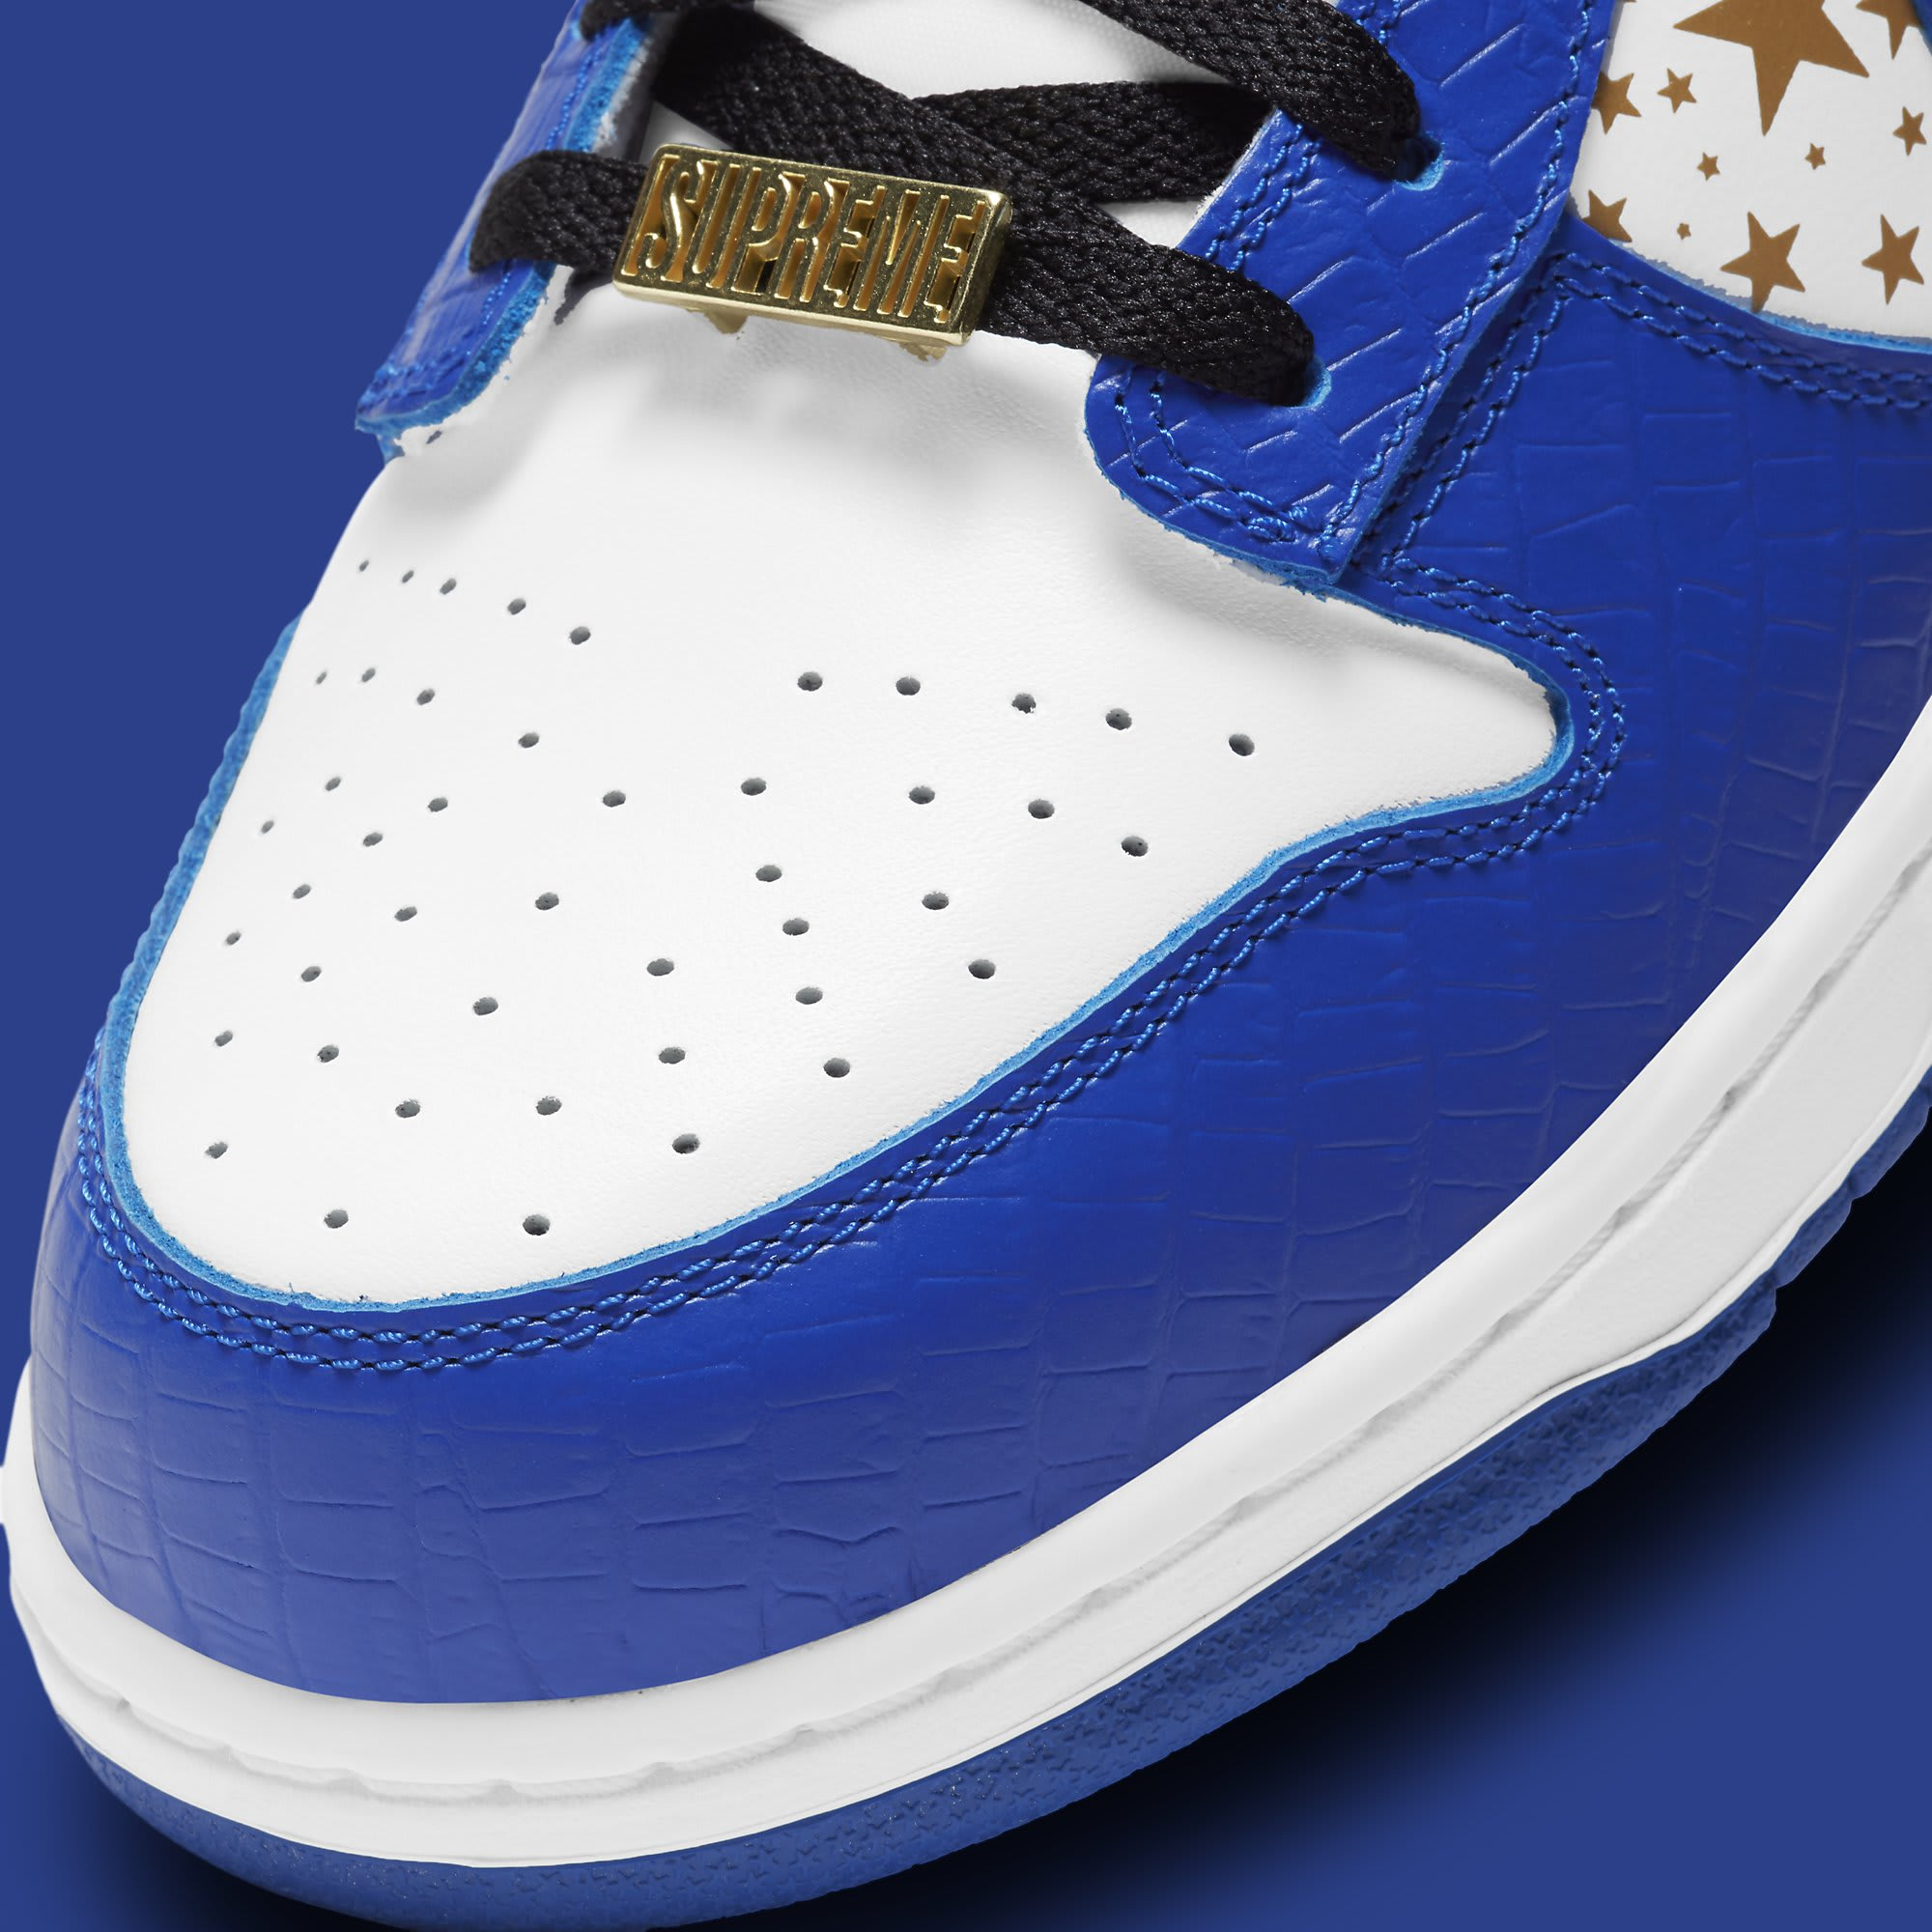 Supreme x Nike SB Dunk Low 'Hyper Royal' DH3228-100 Toe